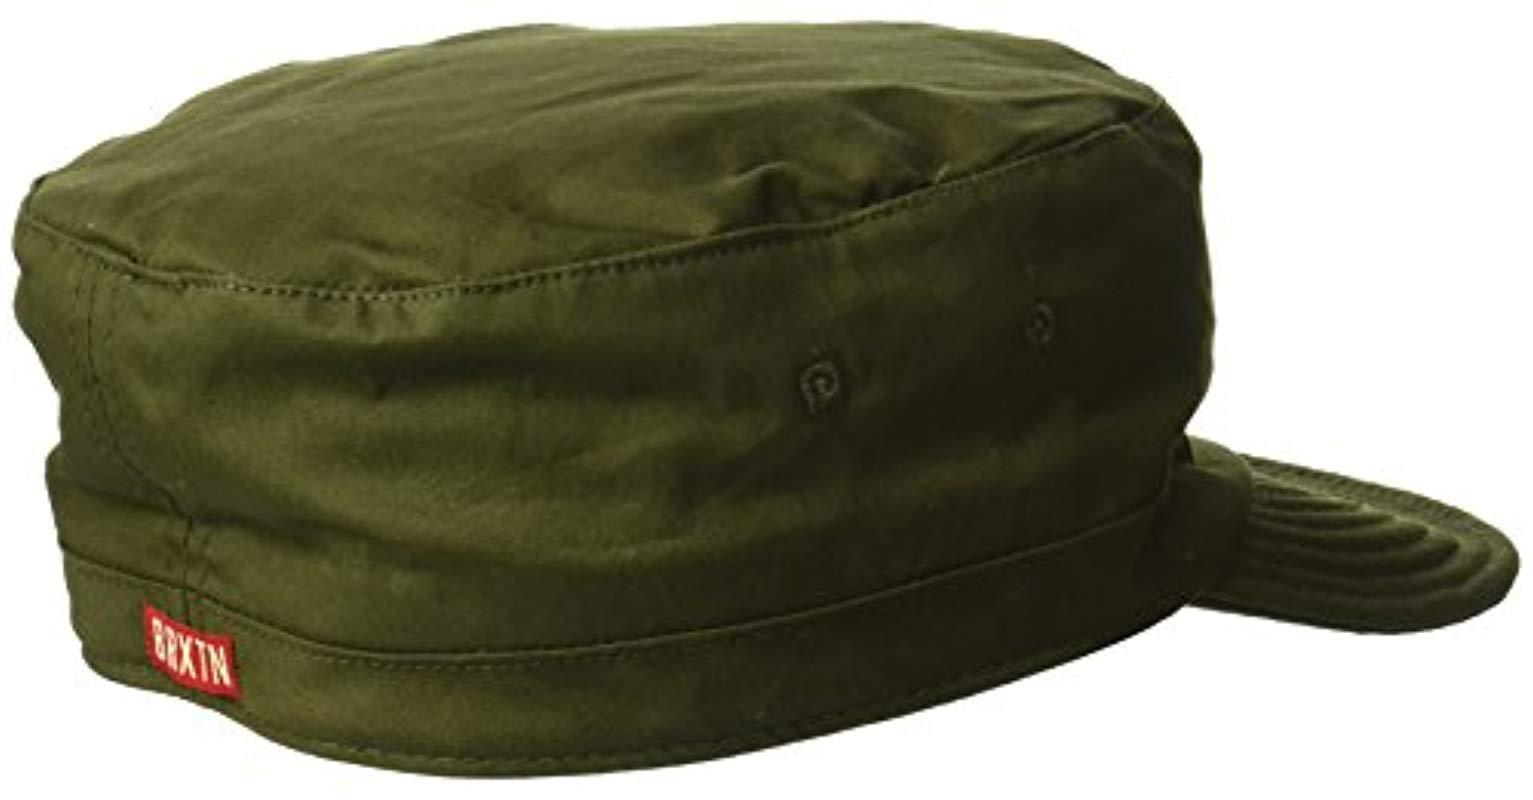 b2a101081b0de Brixton - Green Brigade Unstructured Military Style Hat for Men - Lyst.  View fullscreen